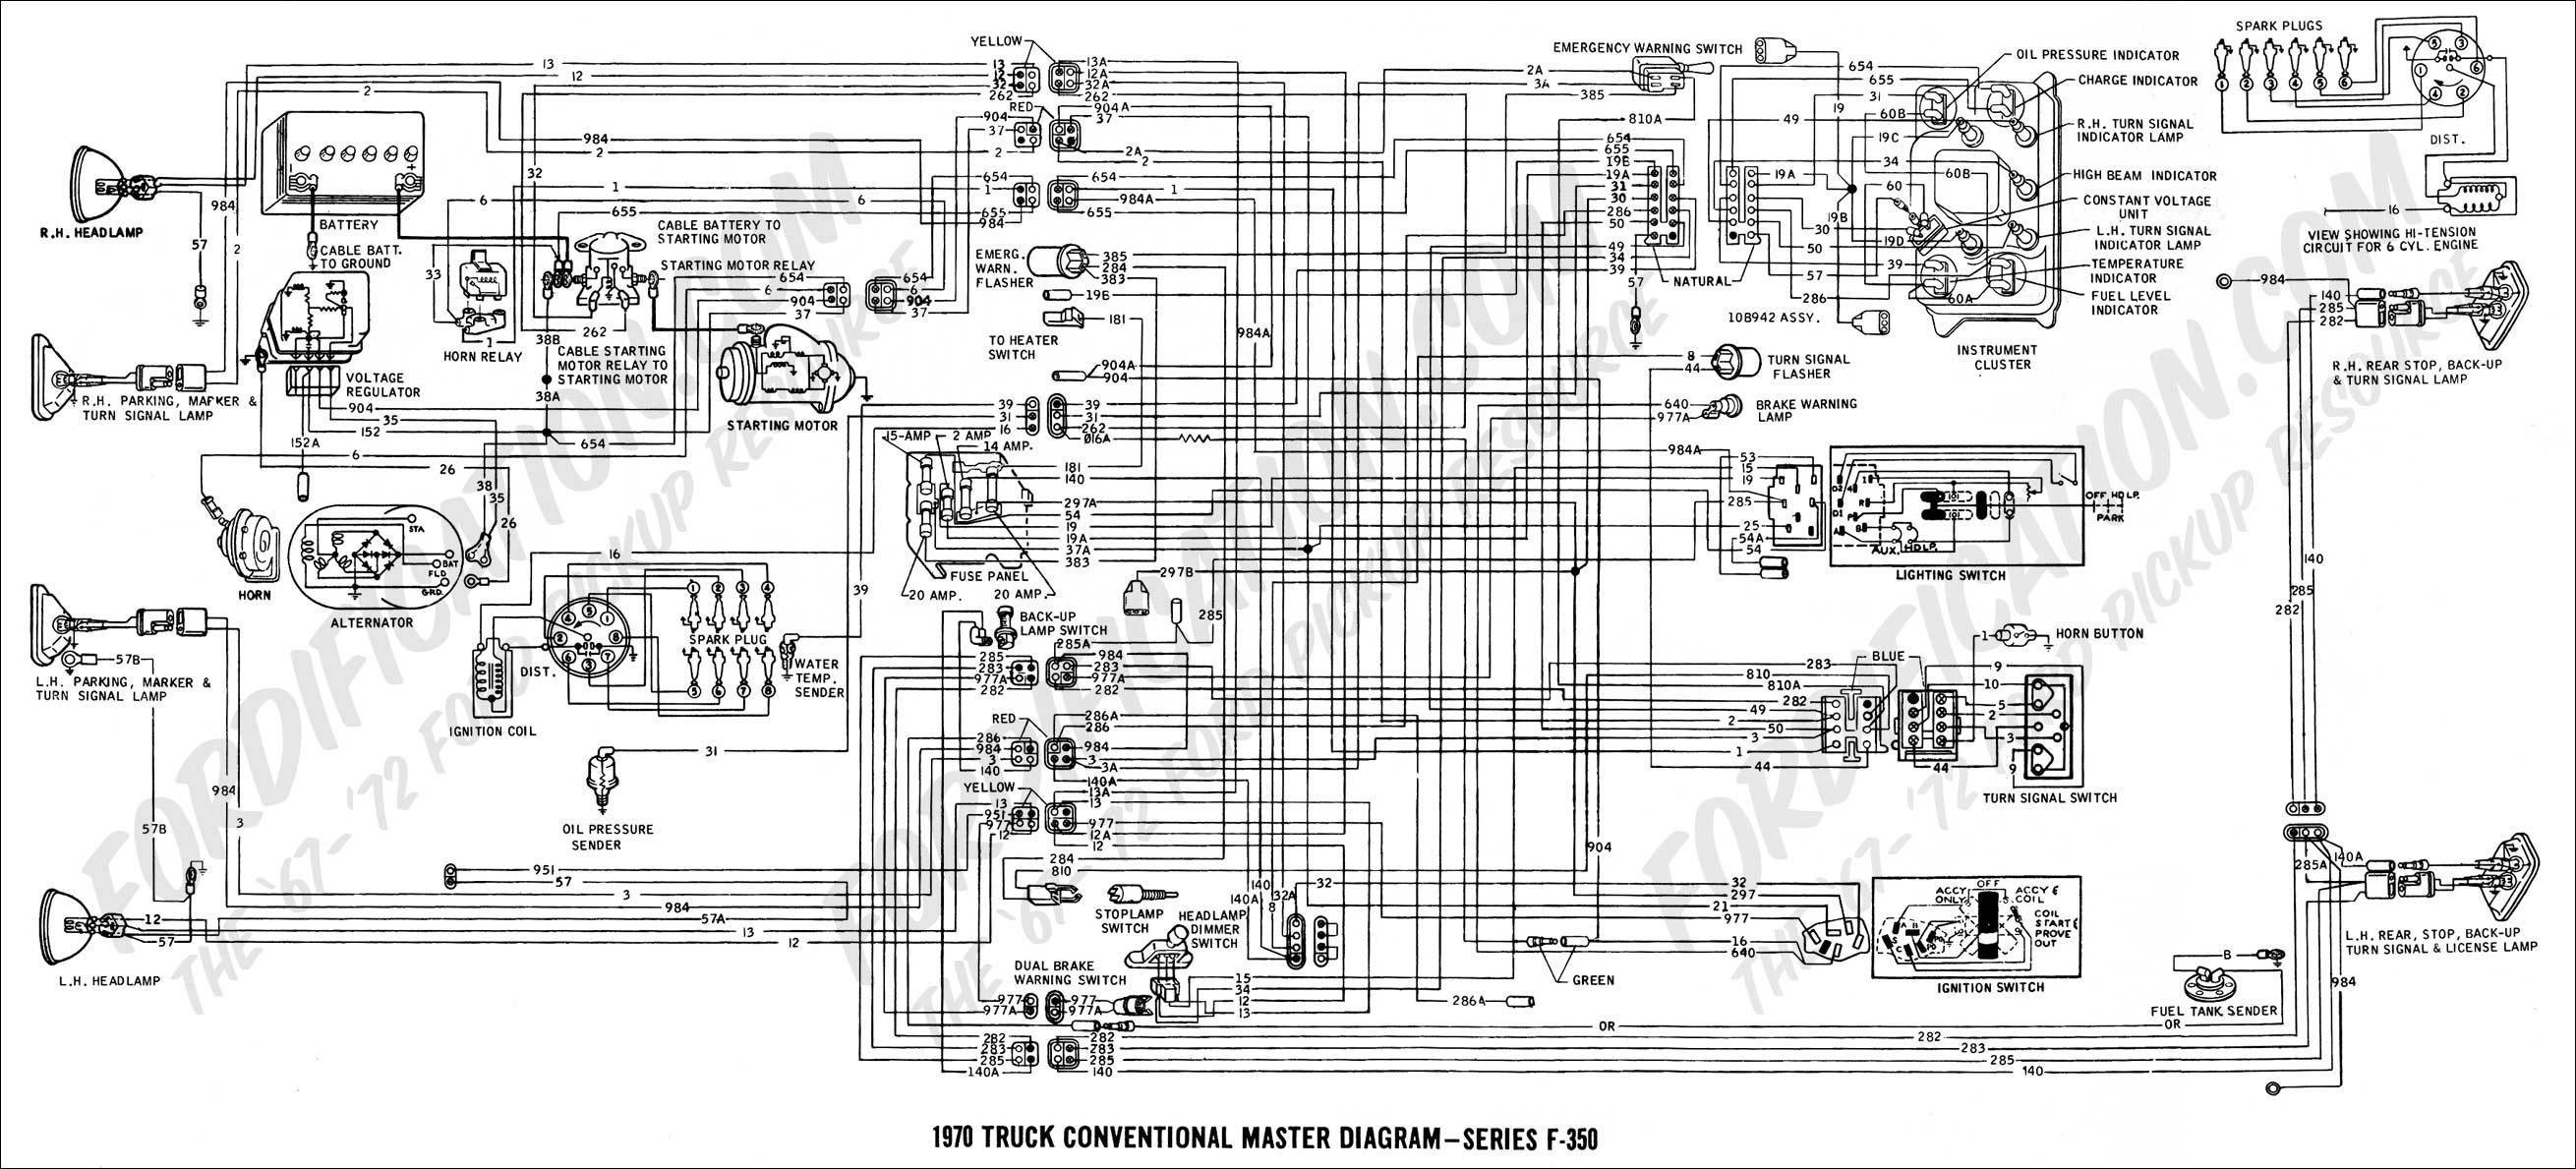 Wiring Diagram For 2003 Mitsubishi Eclipse - Wiring Library